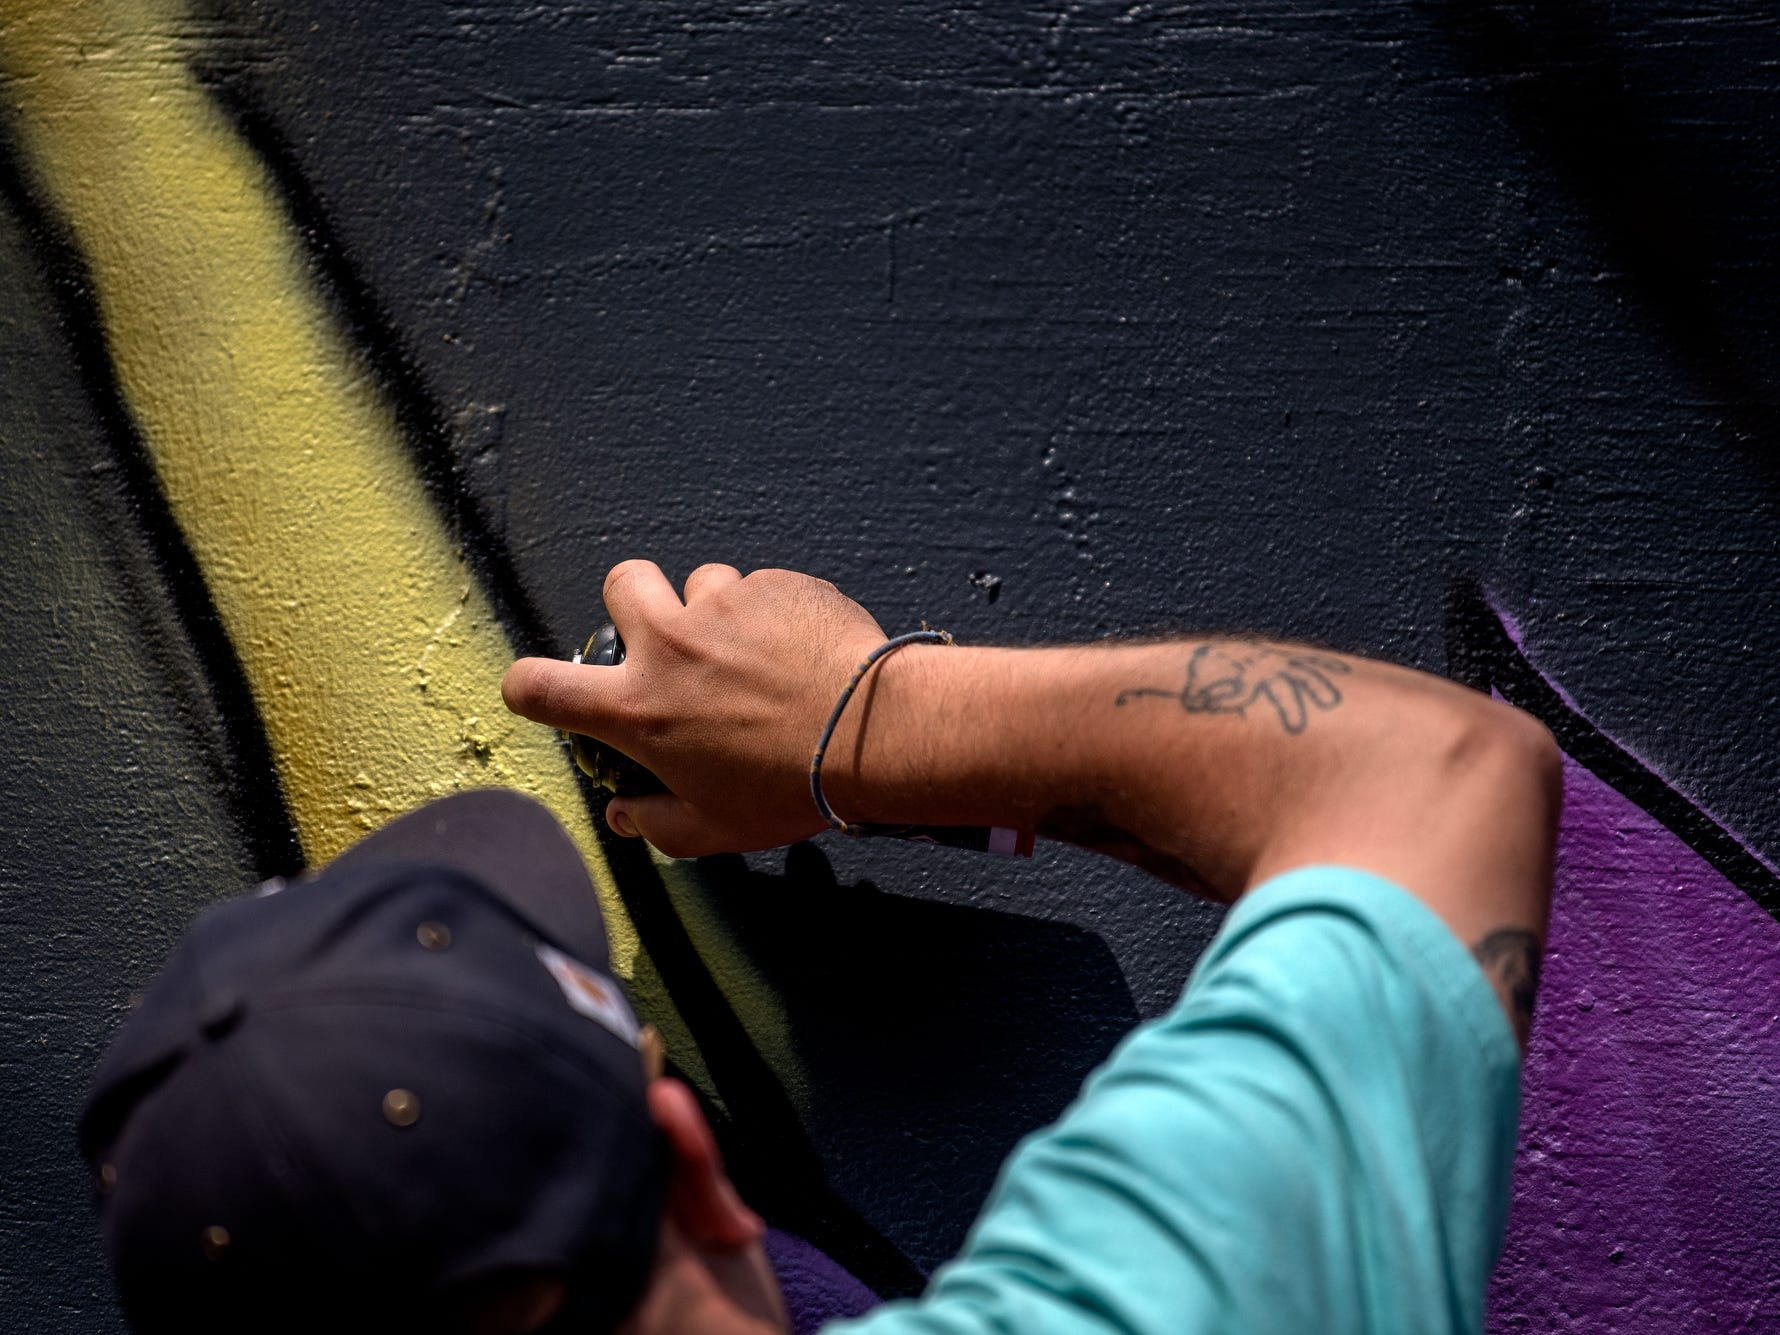 Chris Garcia, 34, of Holland, works on the outline of a flower stem as he paints a mural on the side of Kean's Store on Thursday, Aug. 9, 2018, in downtown Mason. Garcia has been working on the piece over the course of the week.